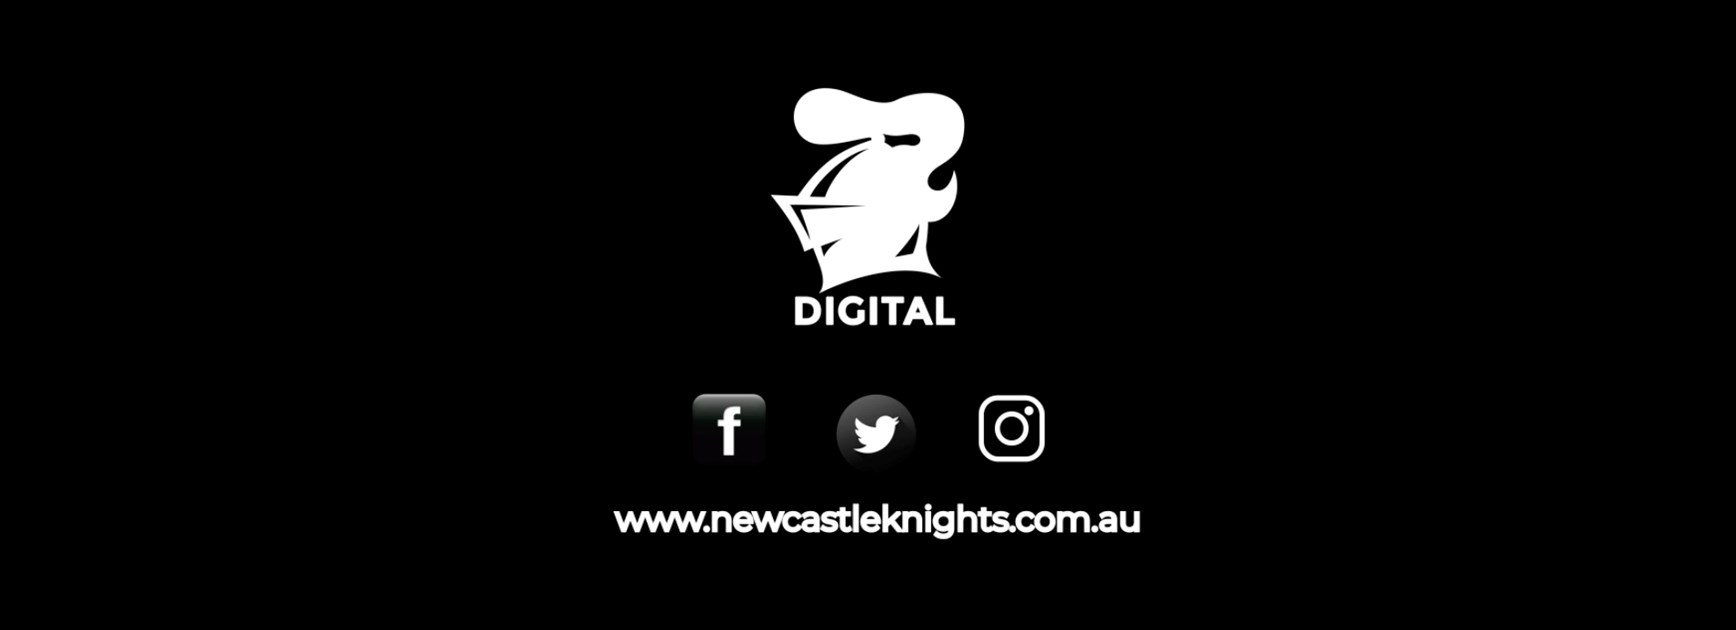 Knights launch 'Knights digital'